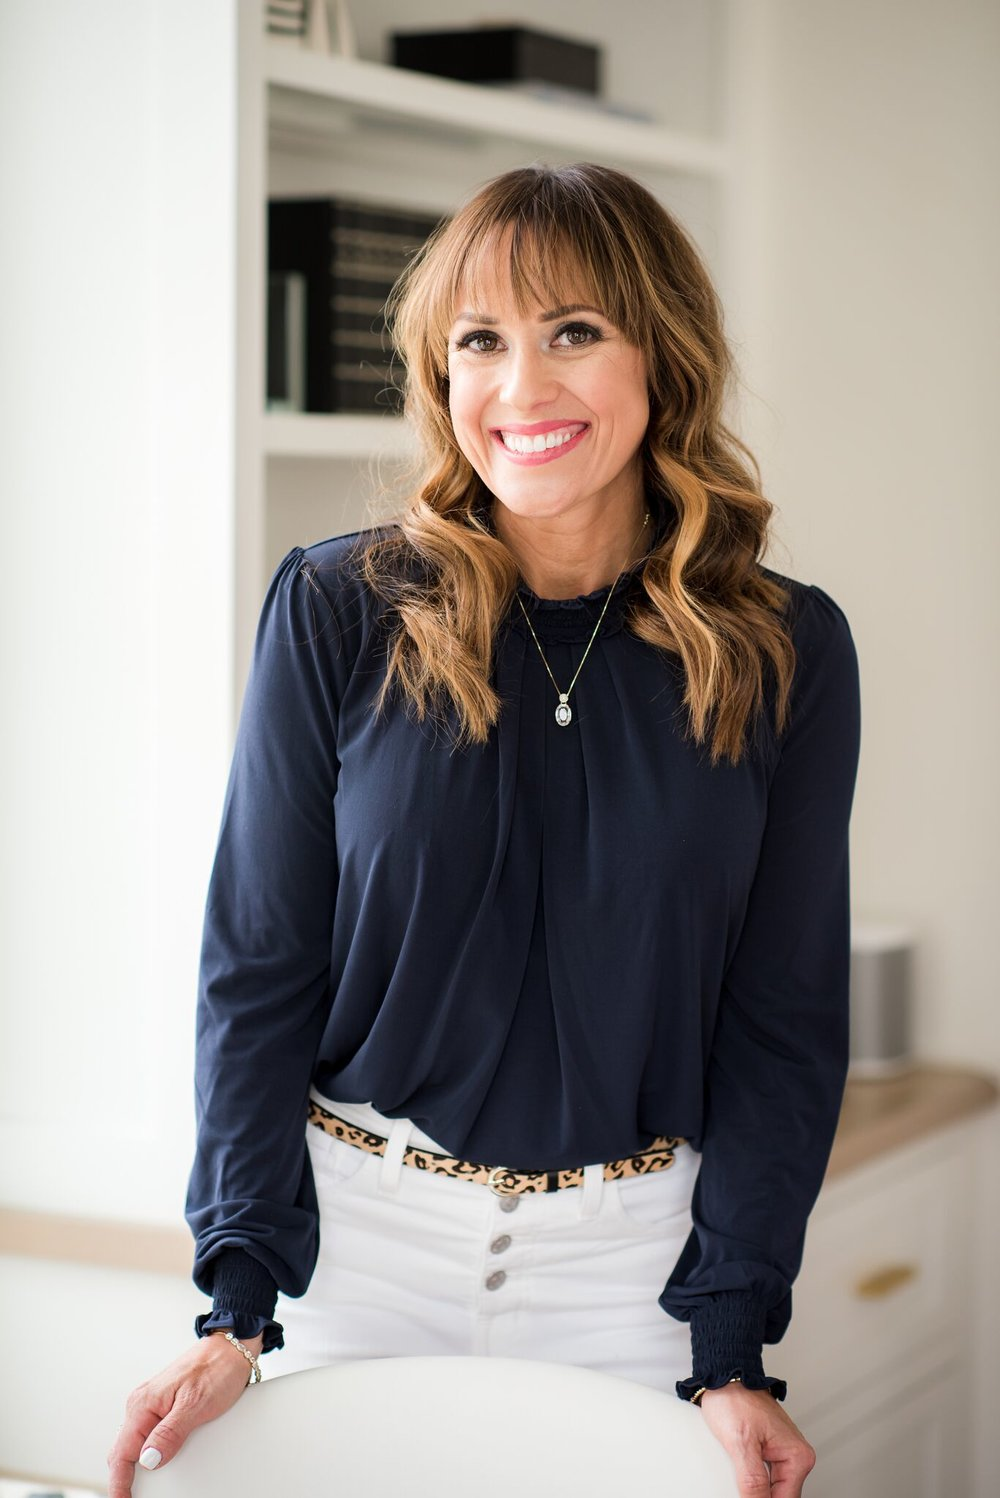 Meagan Rae Macievic - Owner and Principal DesignerMeagan Macievic, has a love for neo-classical style while incorporating fresh modern elements. Her ability to blend styles is what creates a unique space for each of her clients. Meagan has a passion for her clients and each space reflects beautiful design, attention to detail, use of color and pattern, while being functional for the people who live in the space.Meagan's ability to blend styles creates a room that feels timeless while at the same time feeling fresh and current. Meagan specializes in mixing patterns, textures, and styles to create a home that has movement and intrigue, while still being a space in which you can relax with family and friends.Meagan is originally from California, and studied design at The Art Institute of California, San Diego. Her roots in California bring a relaxed elegance to each of her designs. Meagan Rae Interiors has over ten years experience in the residential and commercial markets of the Salt Lake Valley, Park City, Las Vegas, Naples Florida, St. George and Southern California.